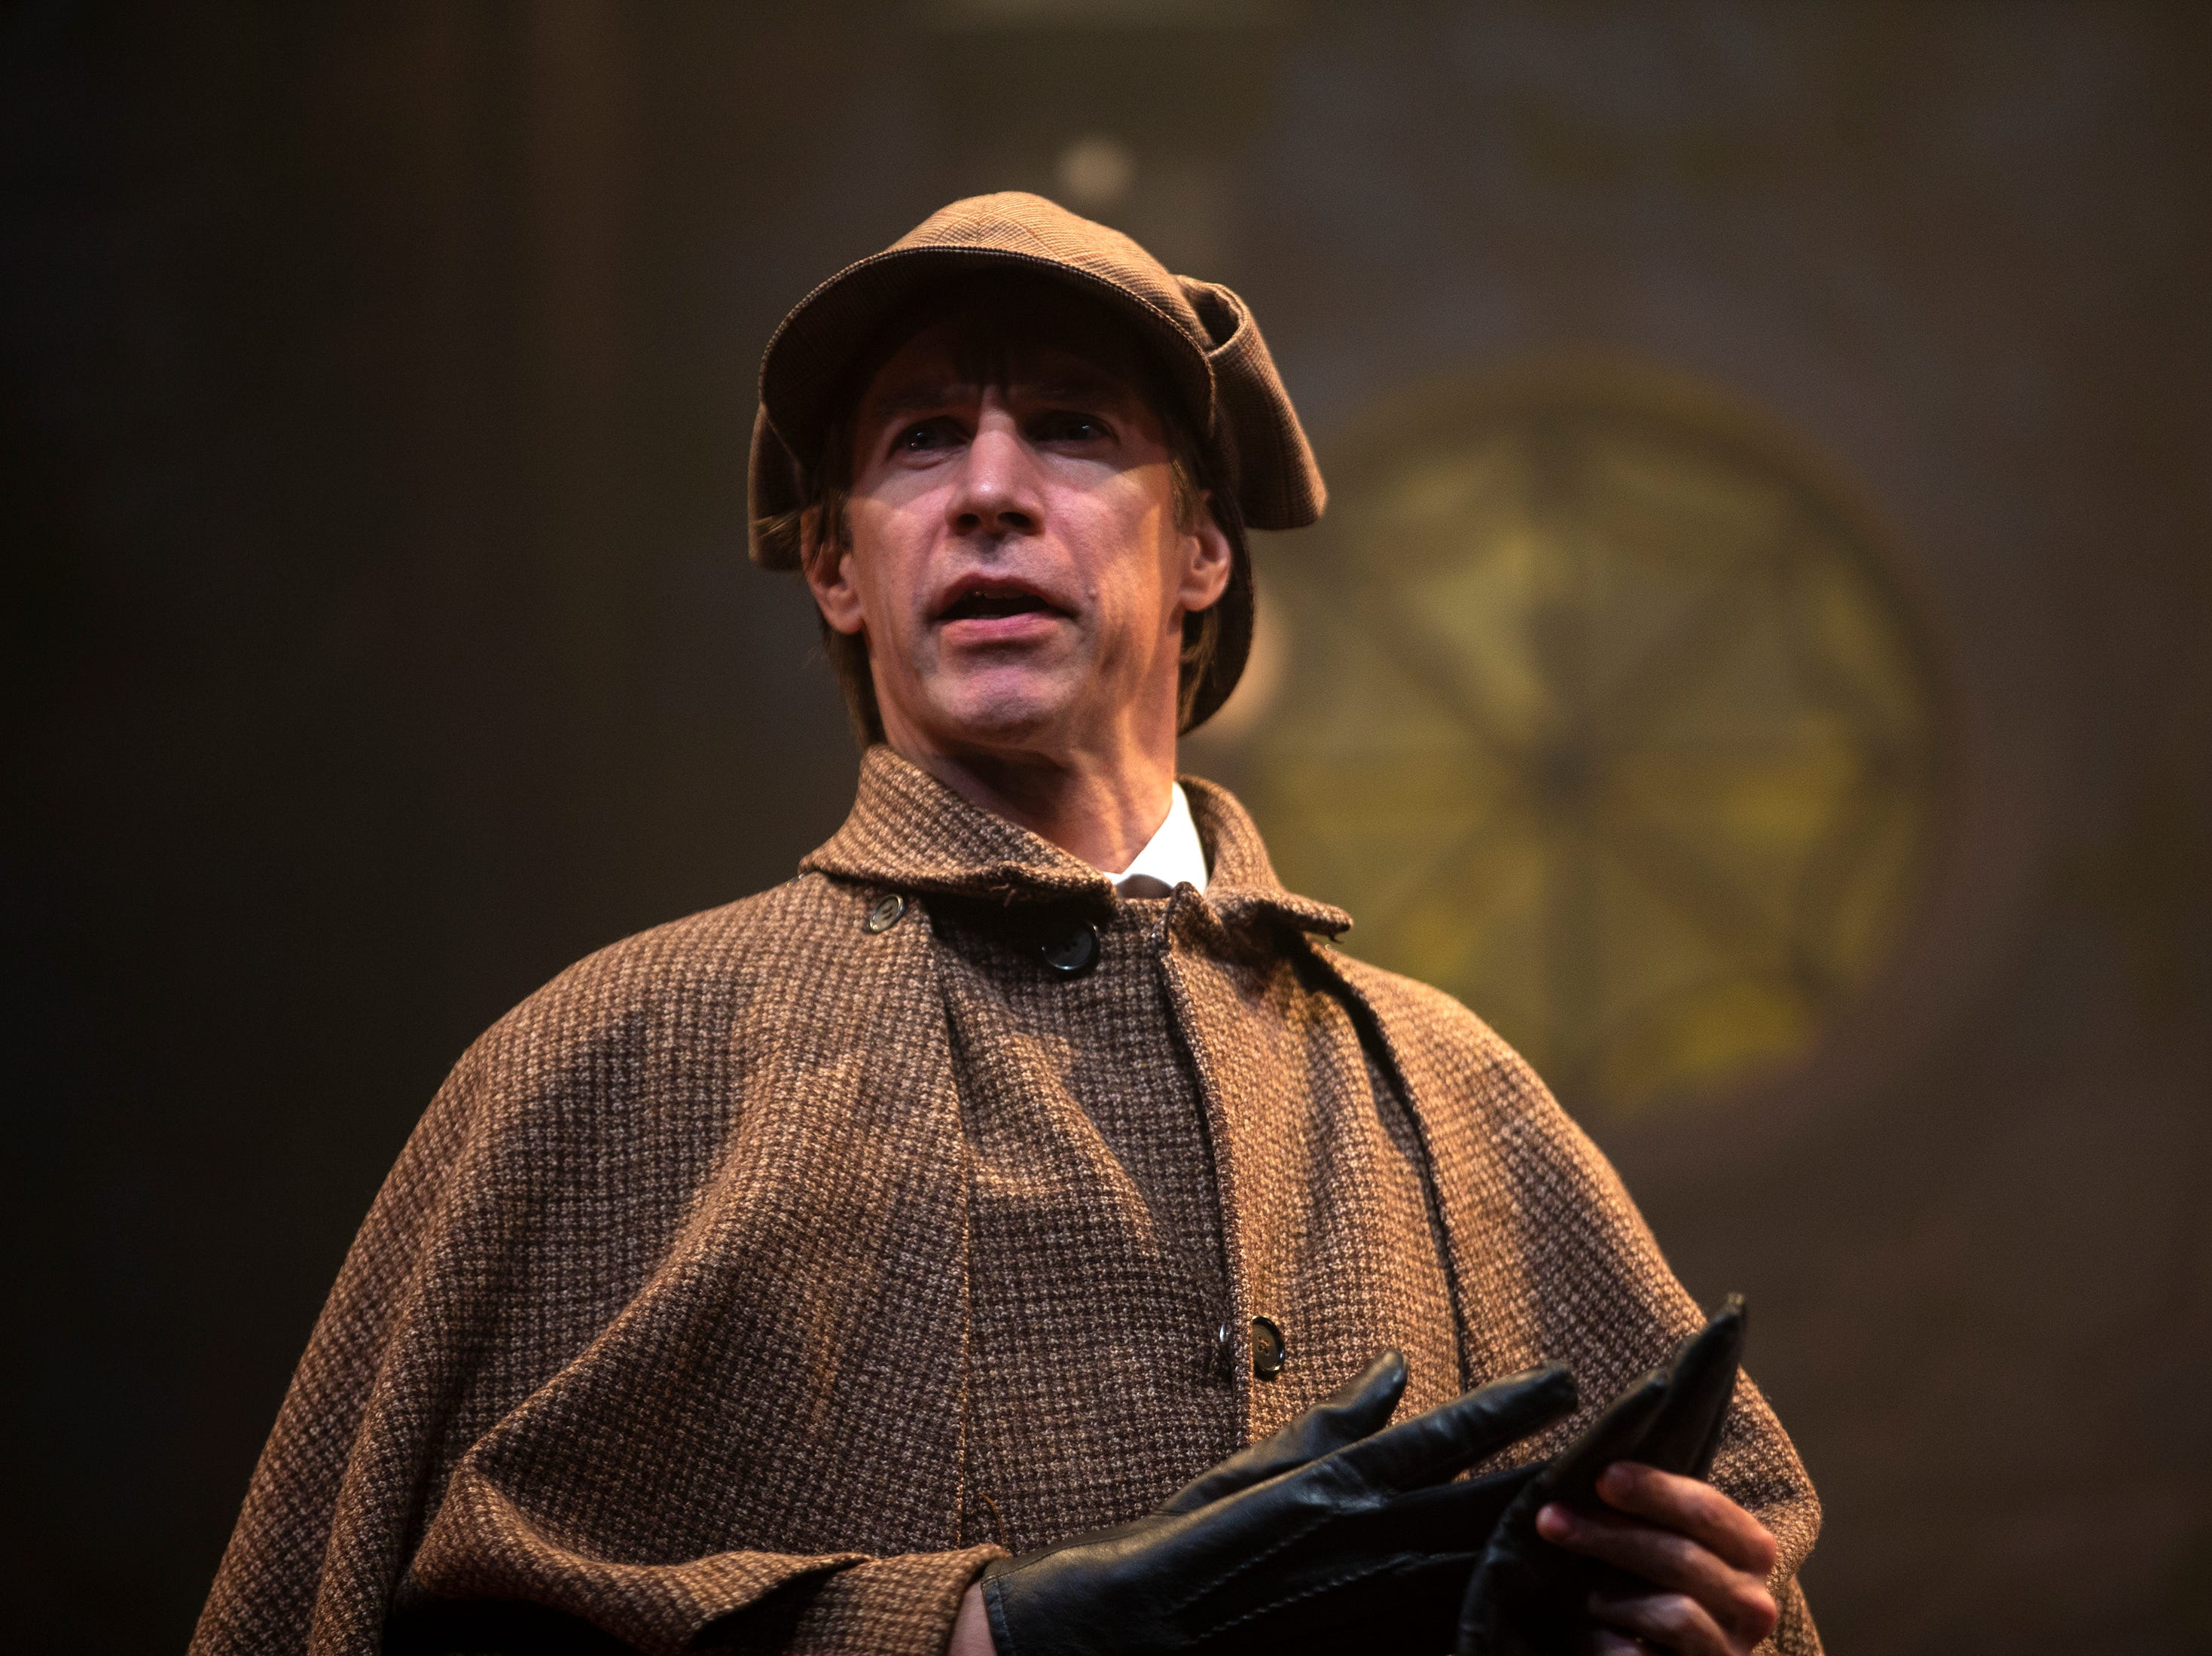 Christopher Kelly rehearses a scene in 'Holmes and Watson', Tuesday, March 19, 2019, at the Gulfshore Playhouse in Naples.